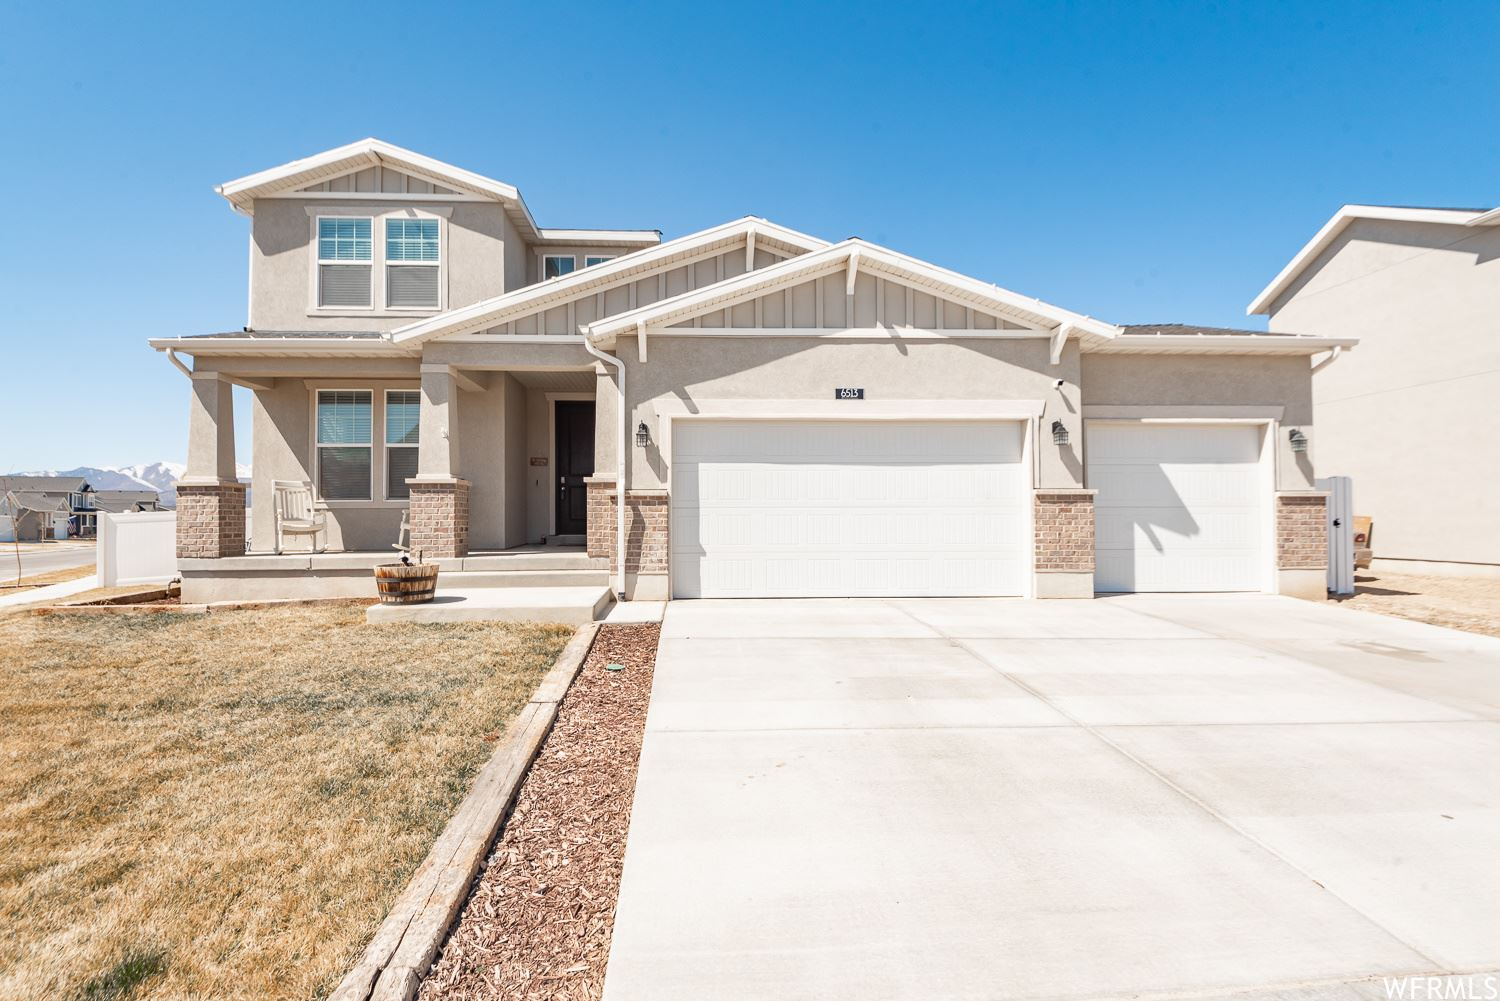 Photo of 6513 N DAVIS KNOLLS DR, Eagle Mountain, UT 84005 (MLS # 1732896)